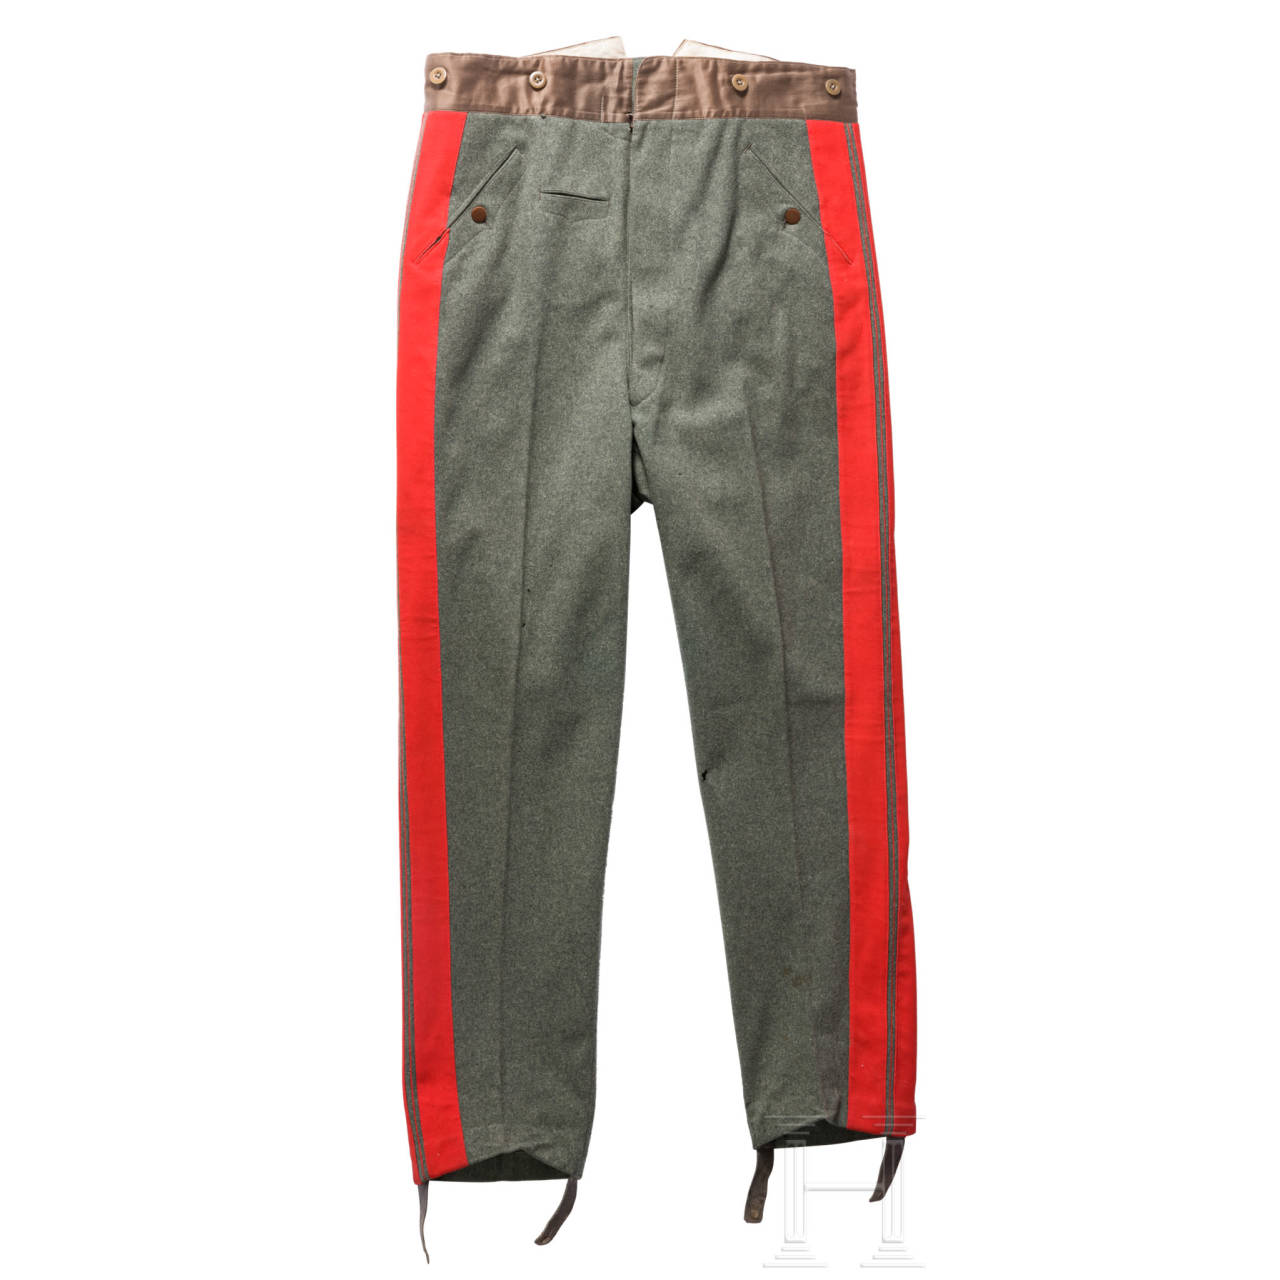 Trousers for a German general